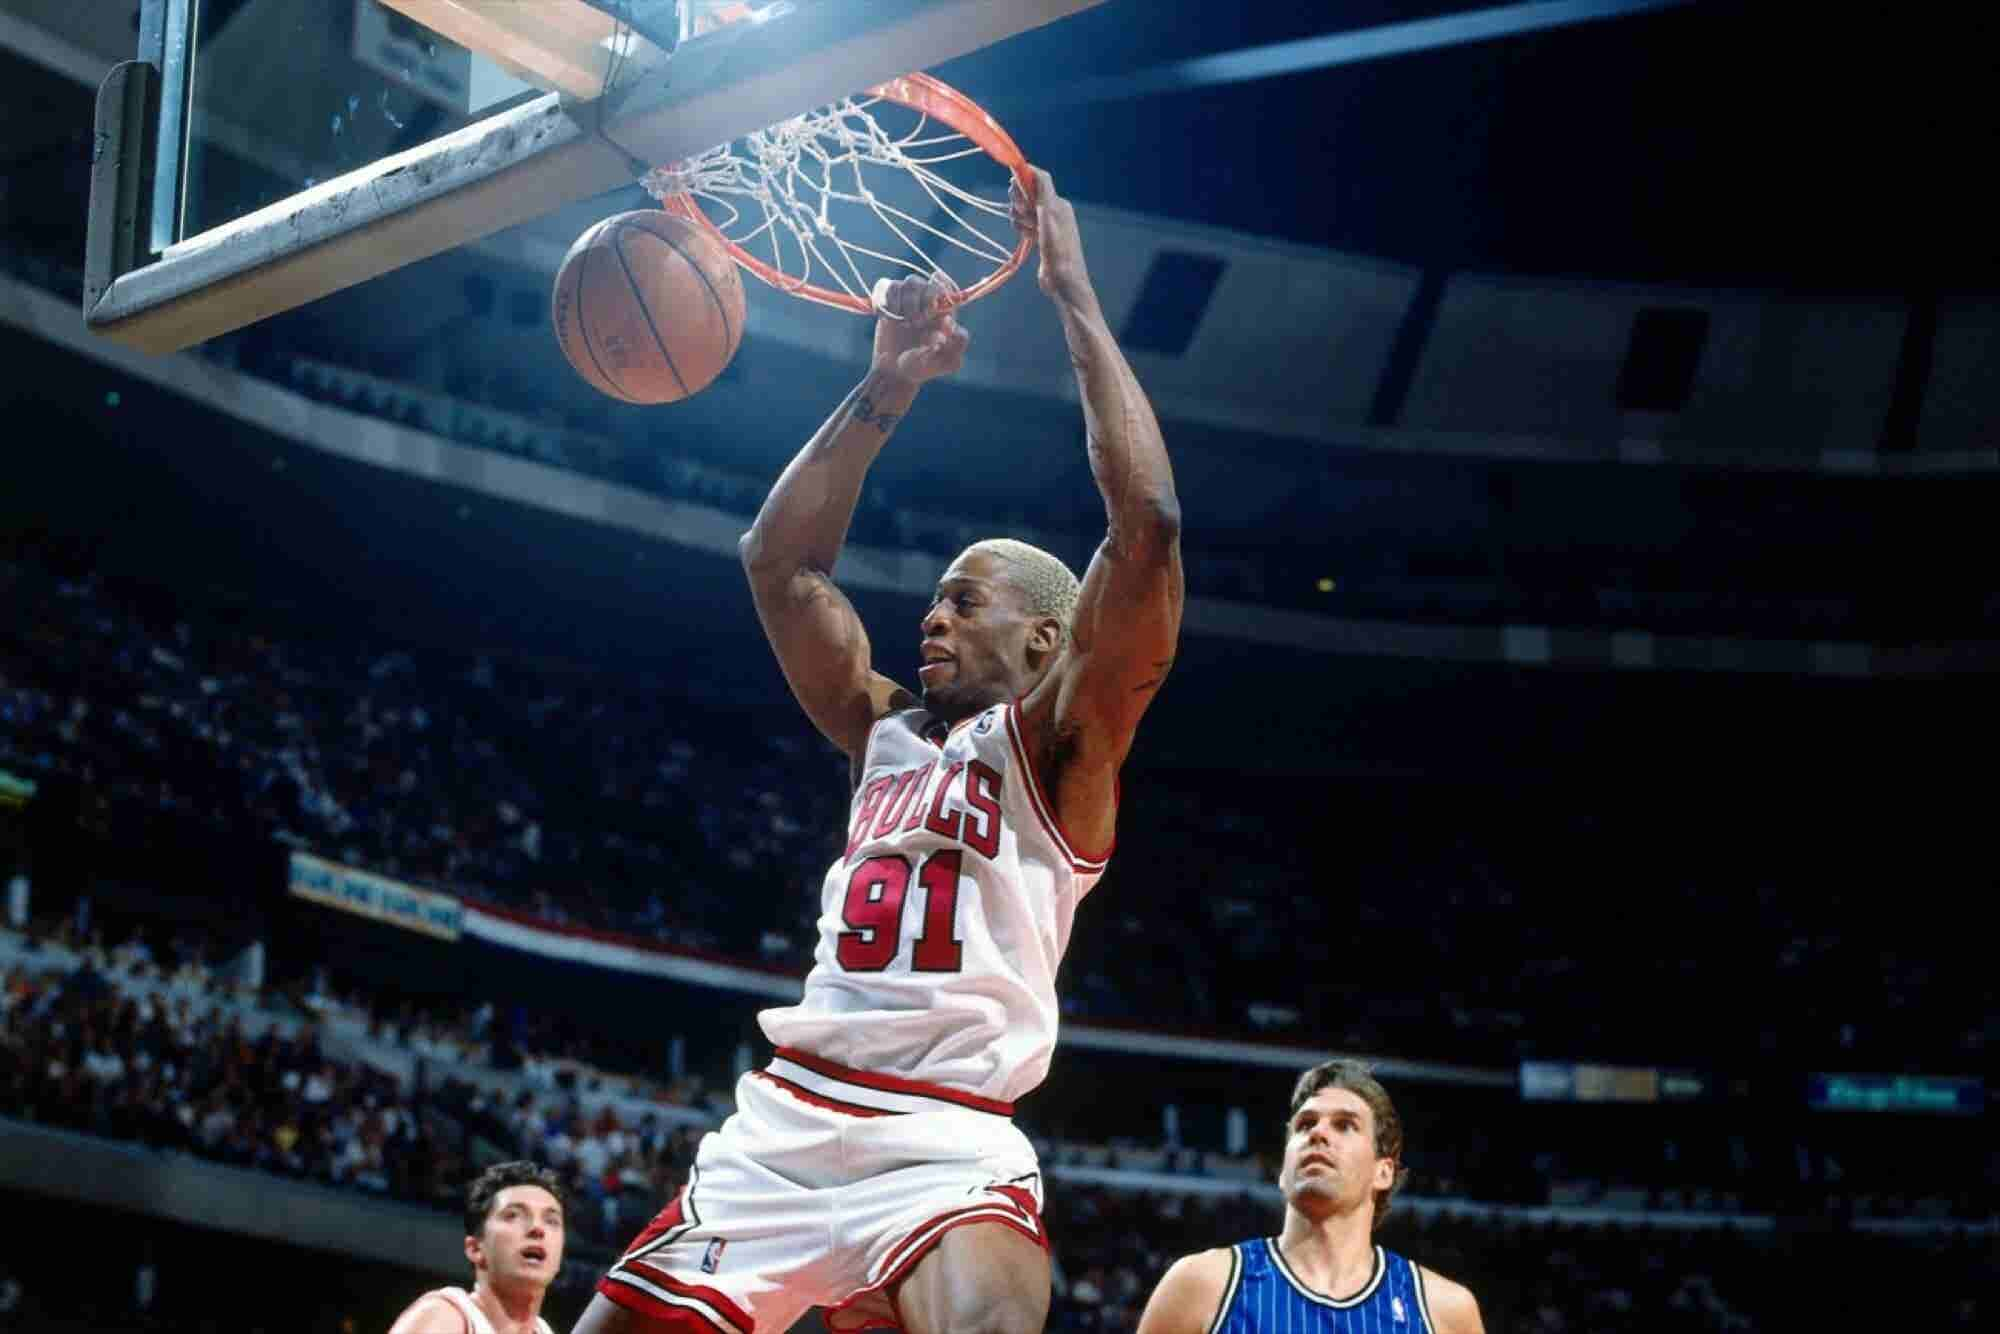 Nextiva Used a Little Ingenuity -- and Dennis Rodman -- for a Marketing Slam Dunk